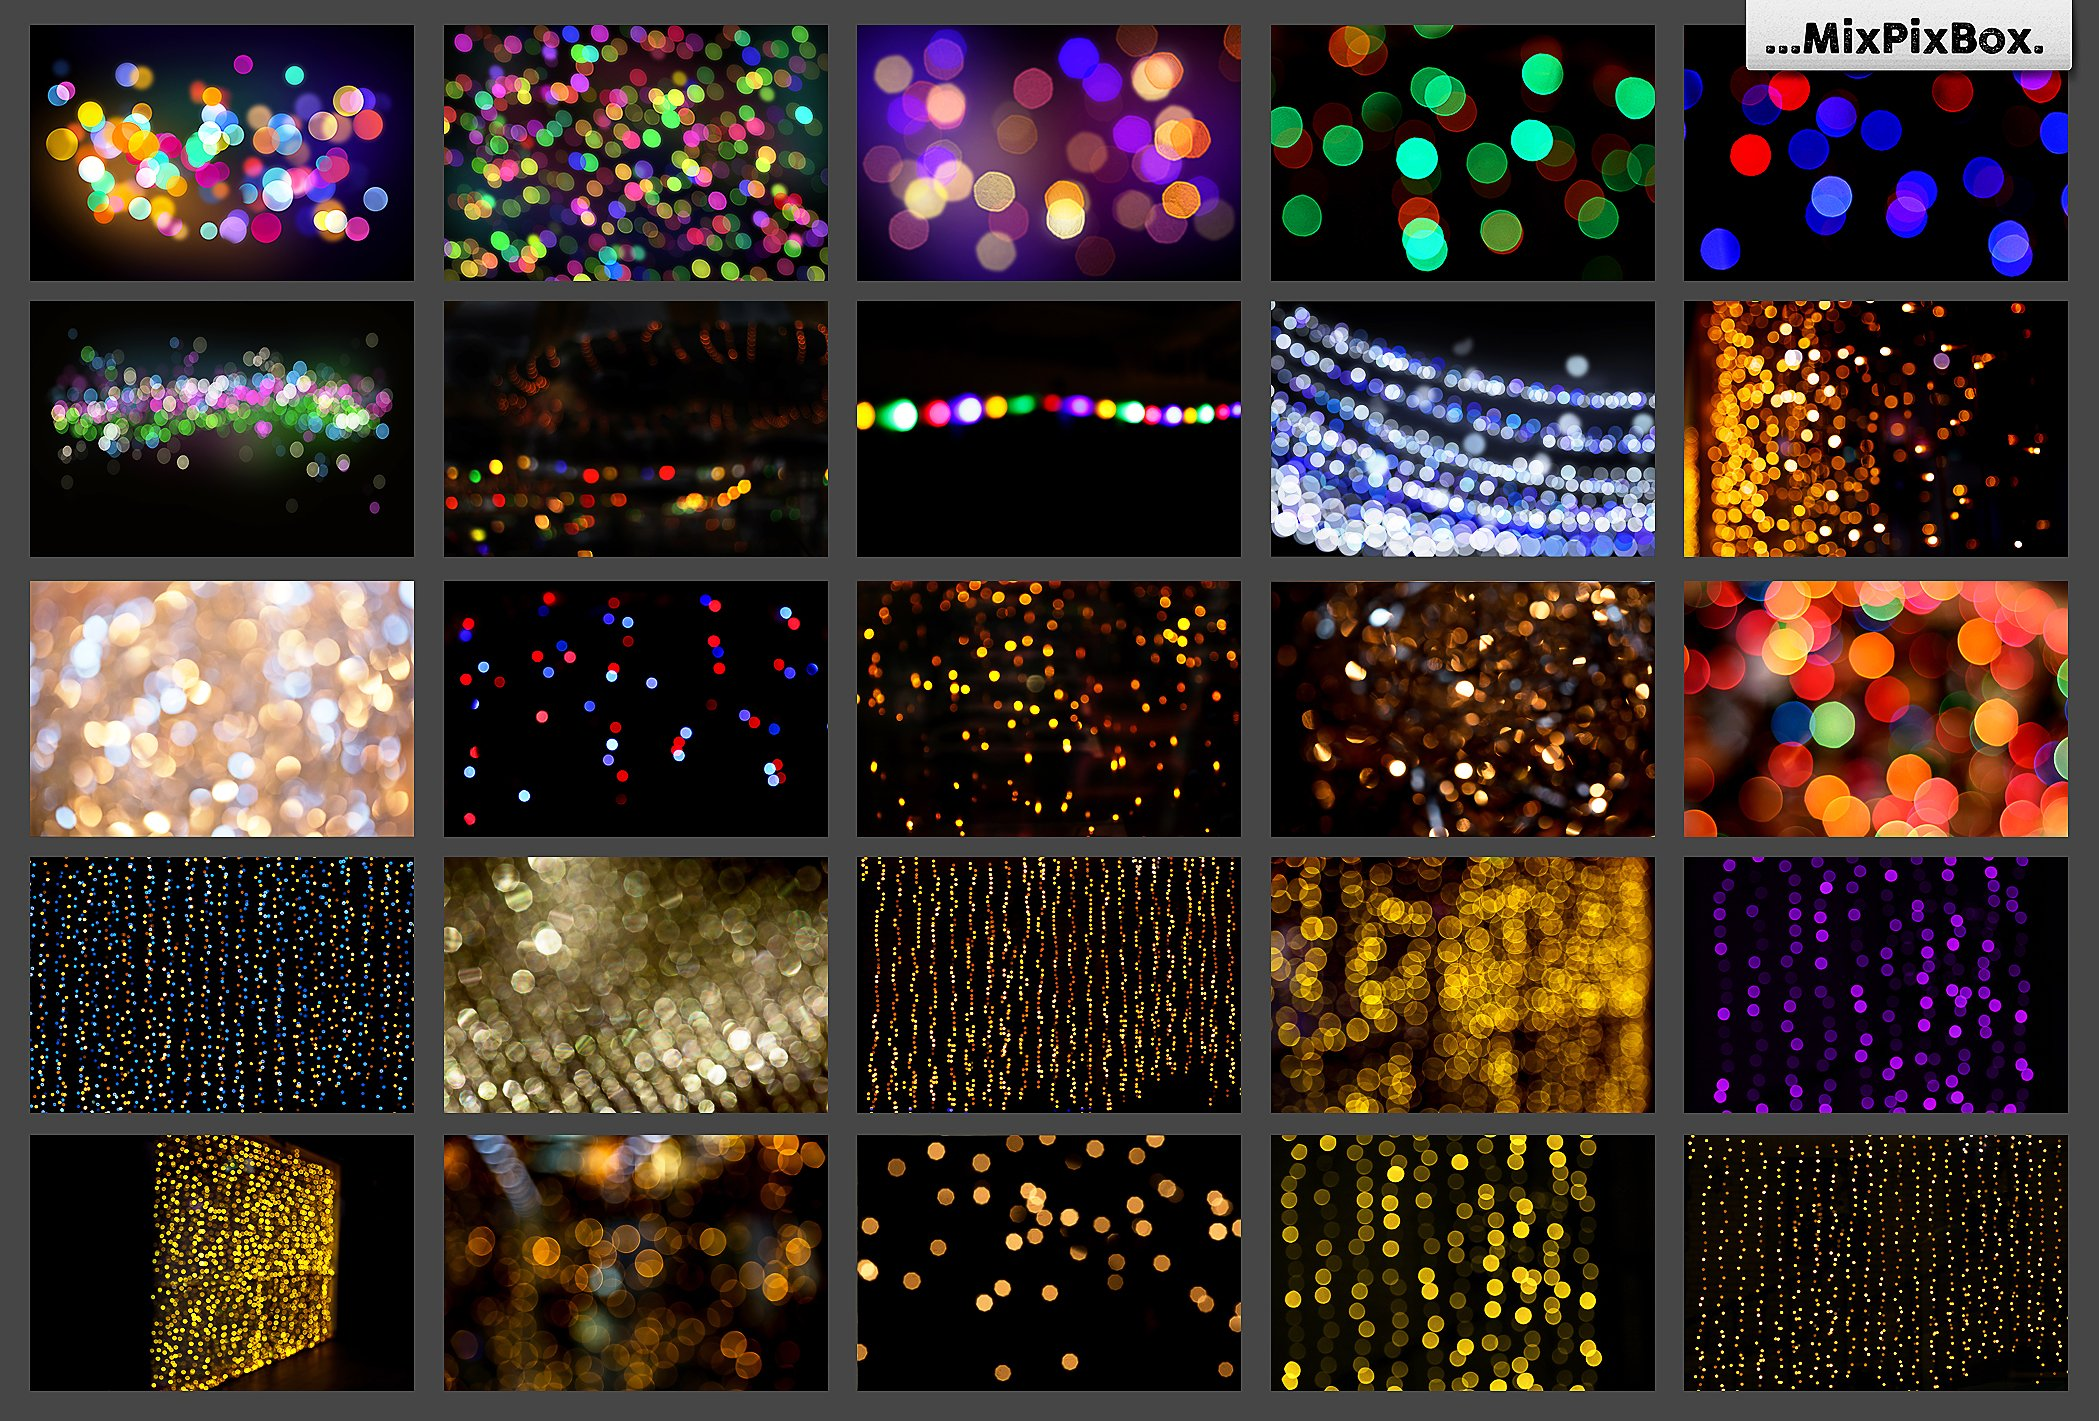 100 Bokeh Photo Overlays - $9 - 4 3